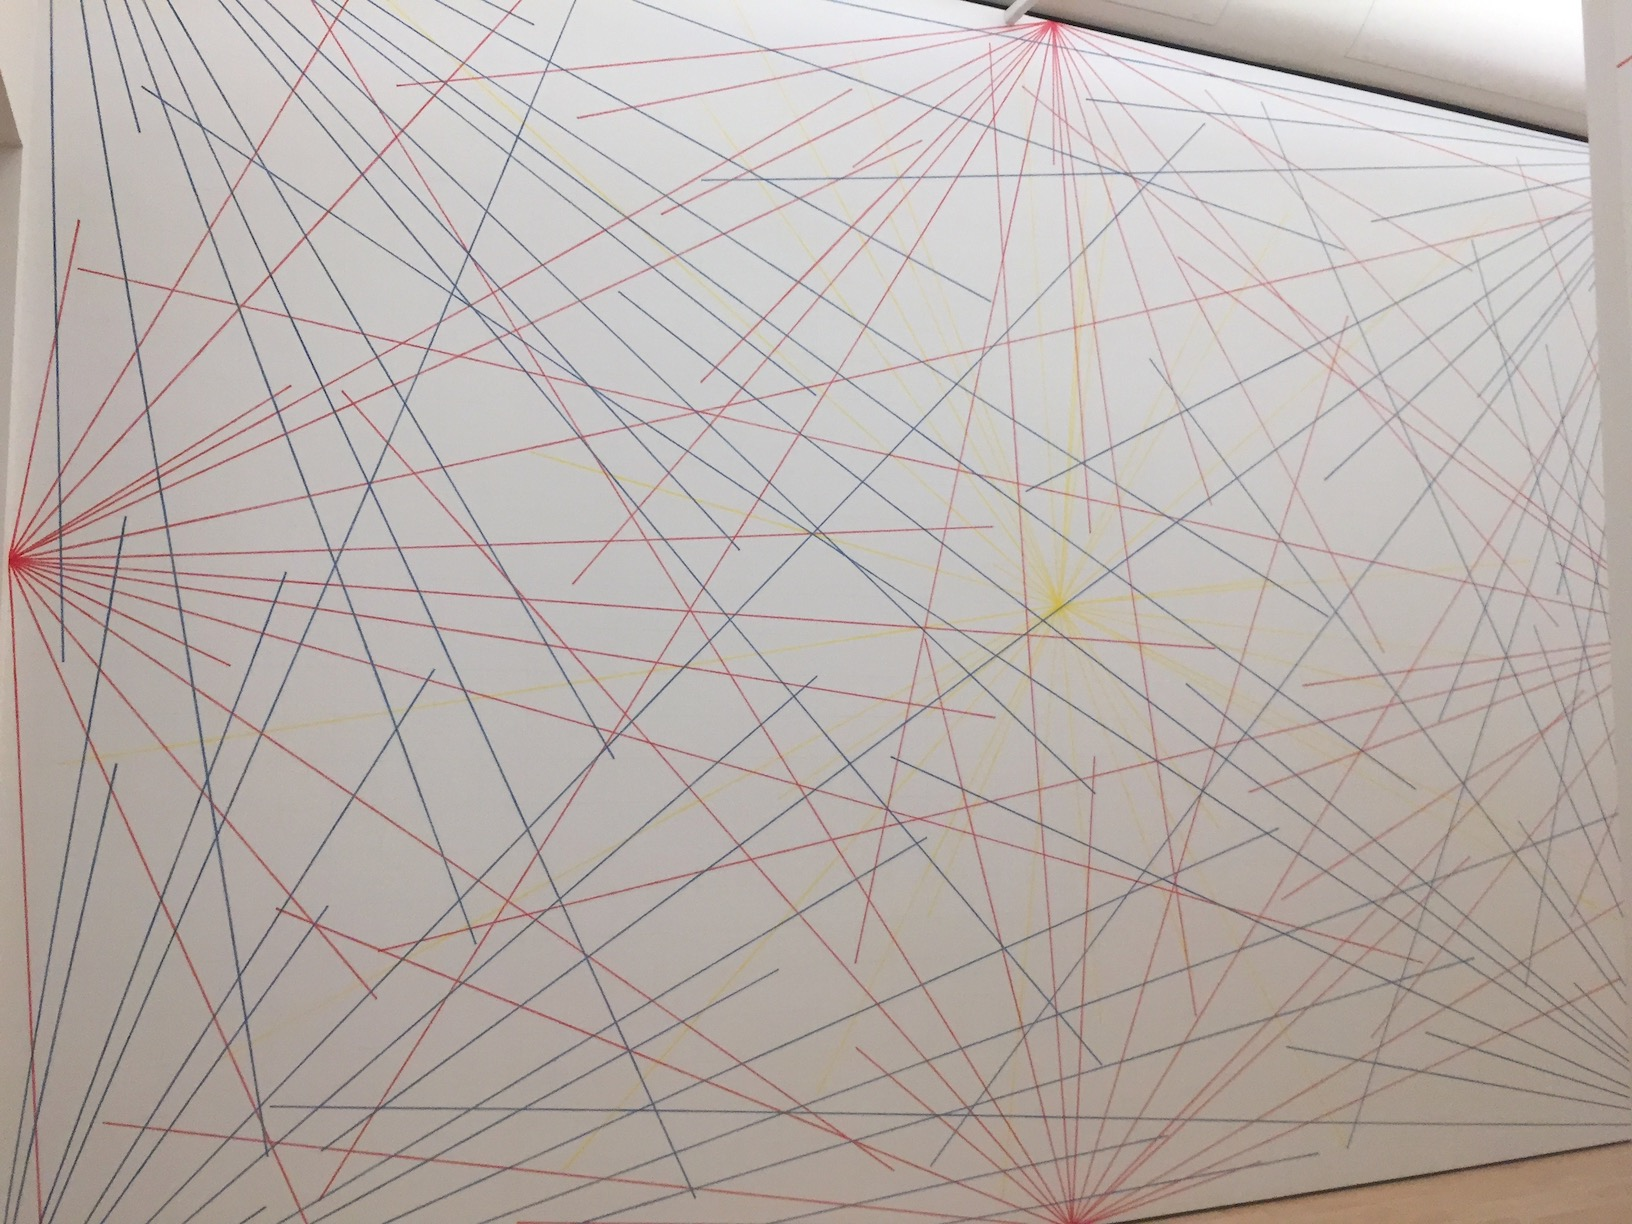 Sol Lewitt Wall Drawing By Jeff Zych